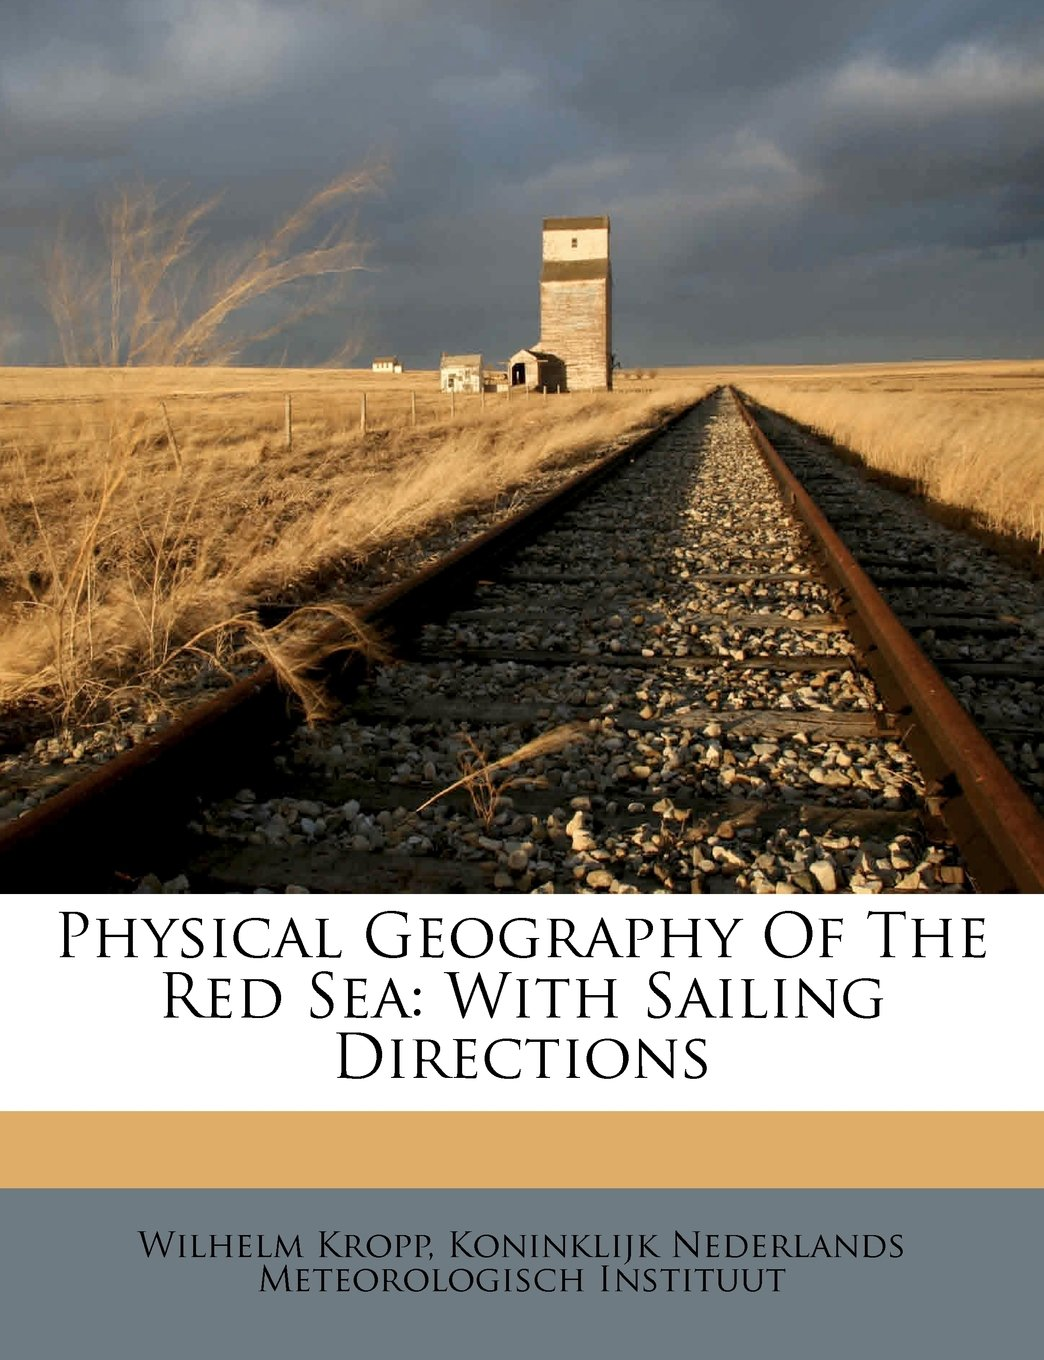 Download Physical Geography Of The Red Sea: With Sailing Directions ebook